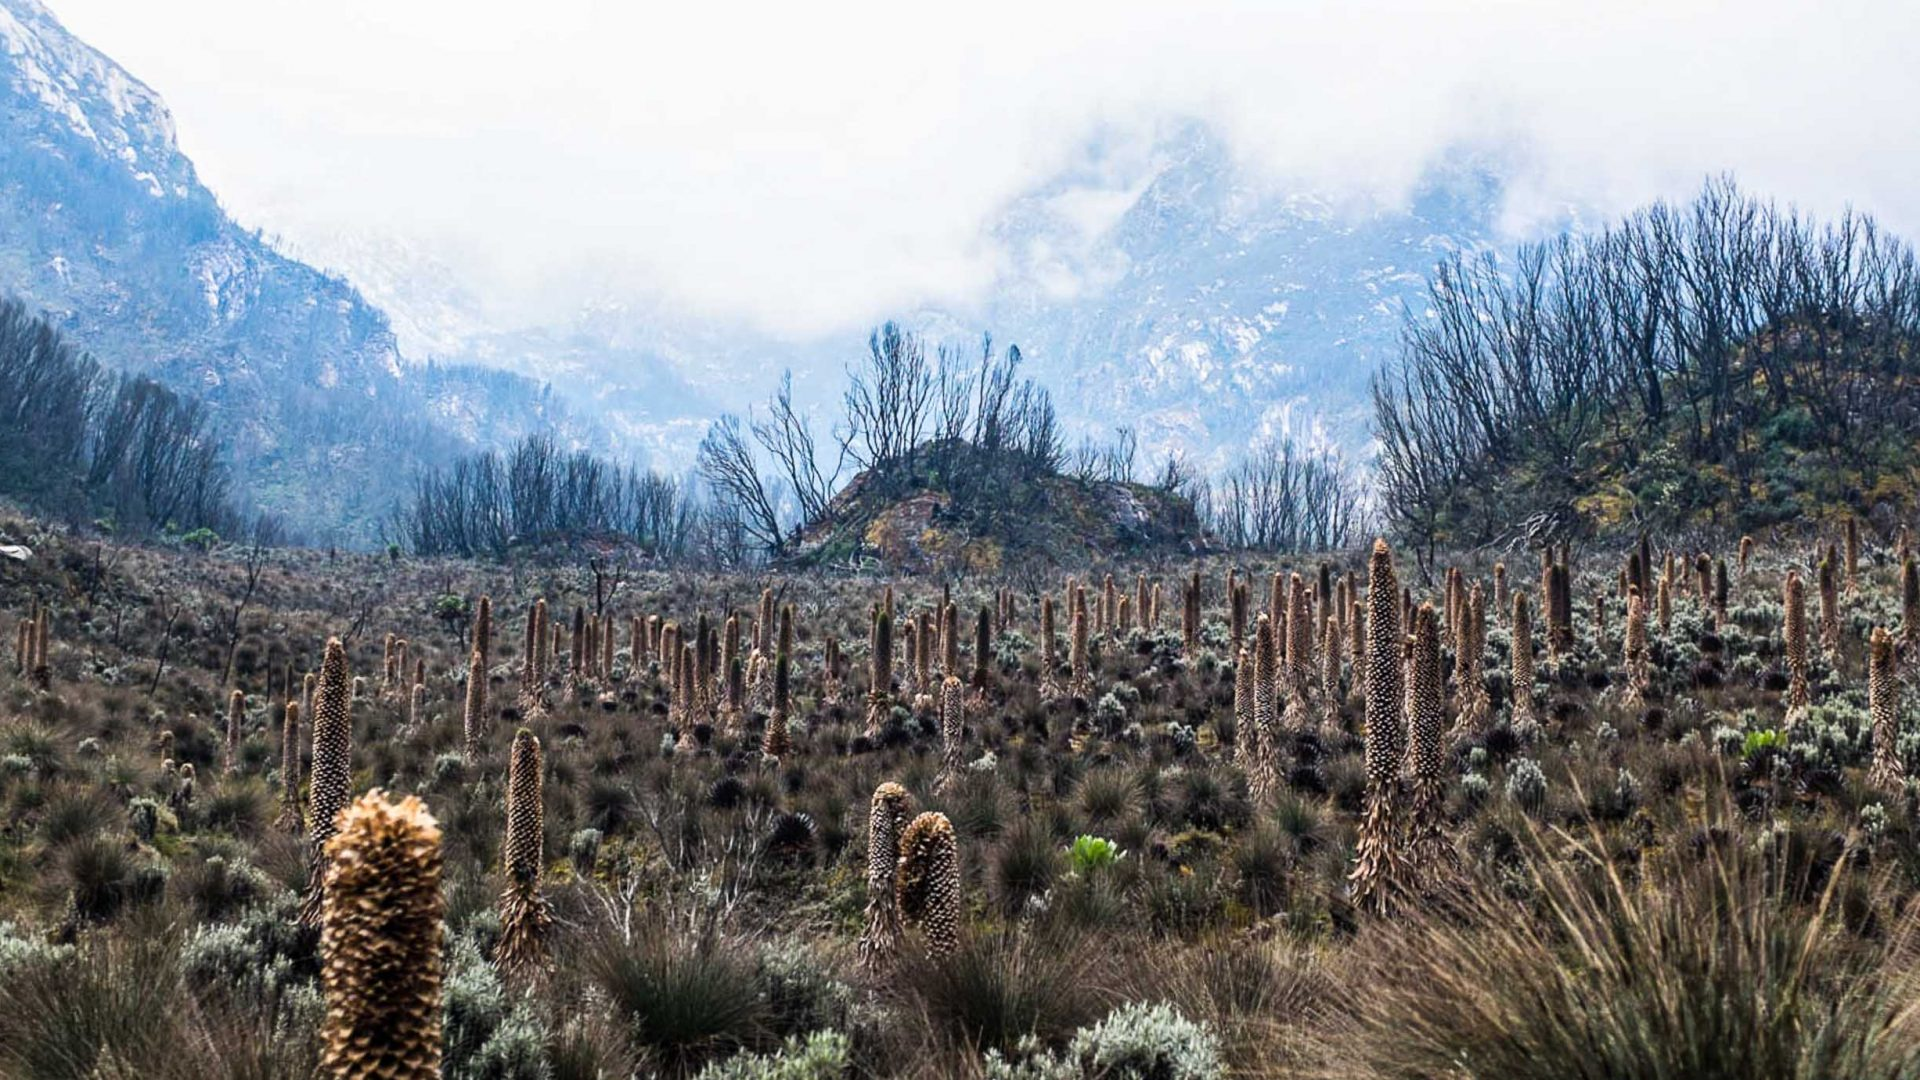 The variable but spectacular landscape of the Rwenzori Mountains in Uganda.